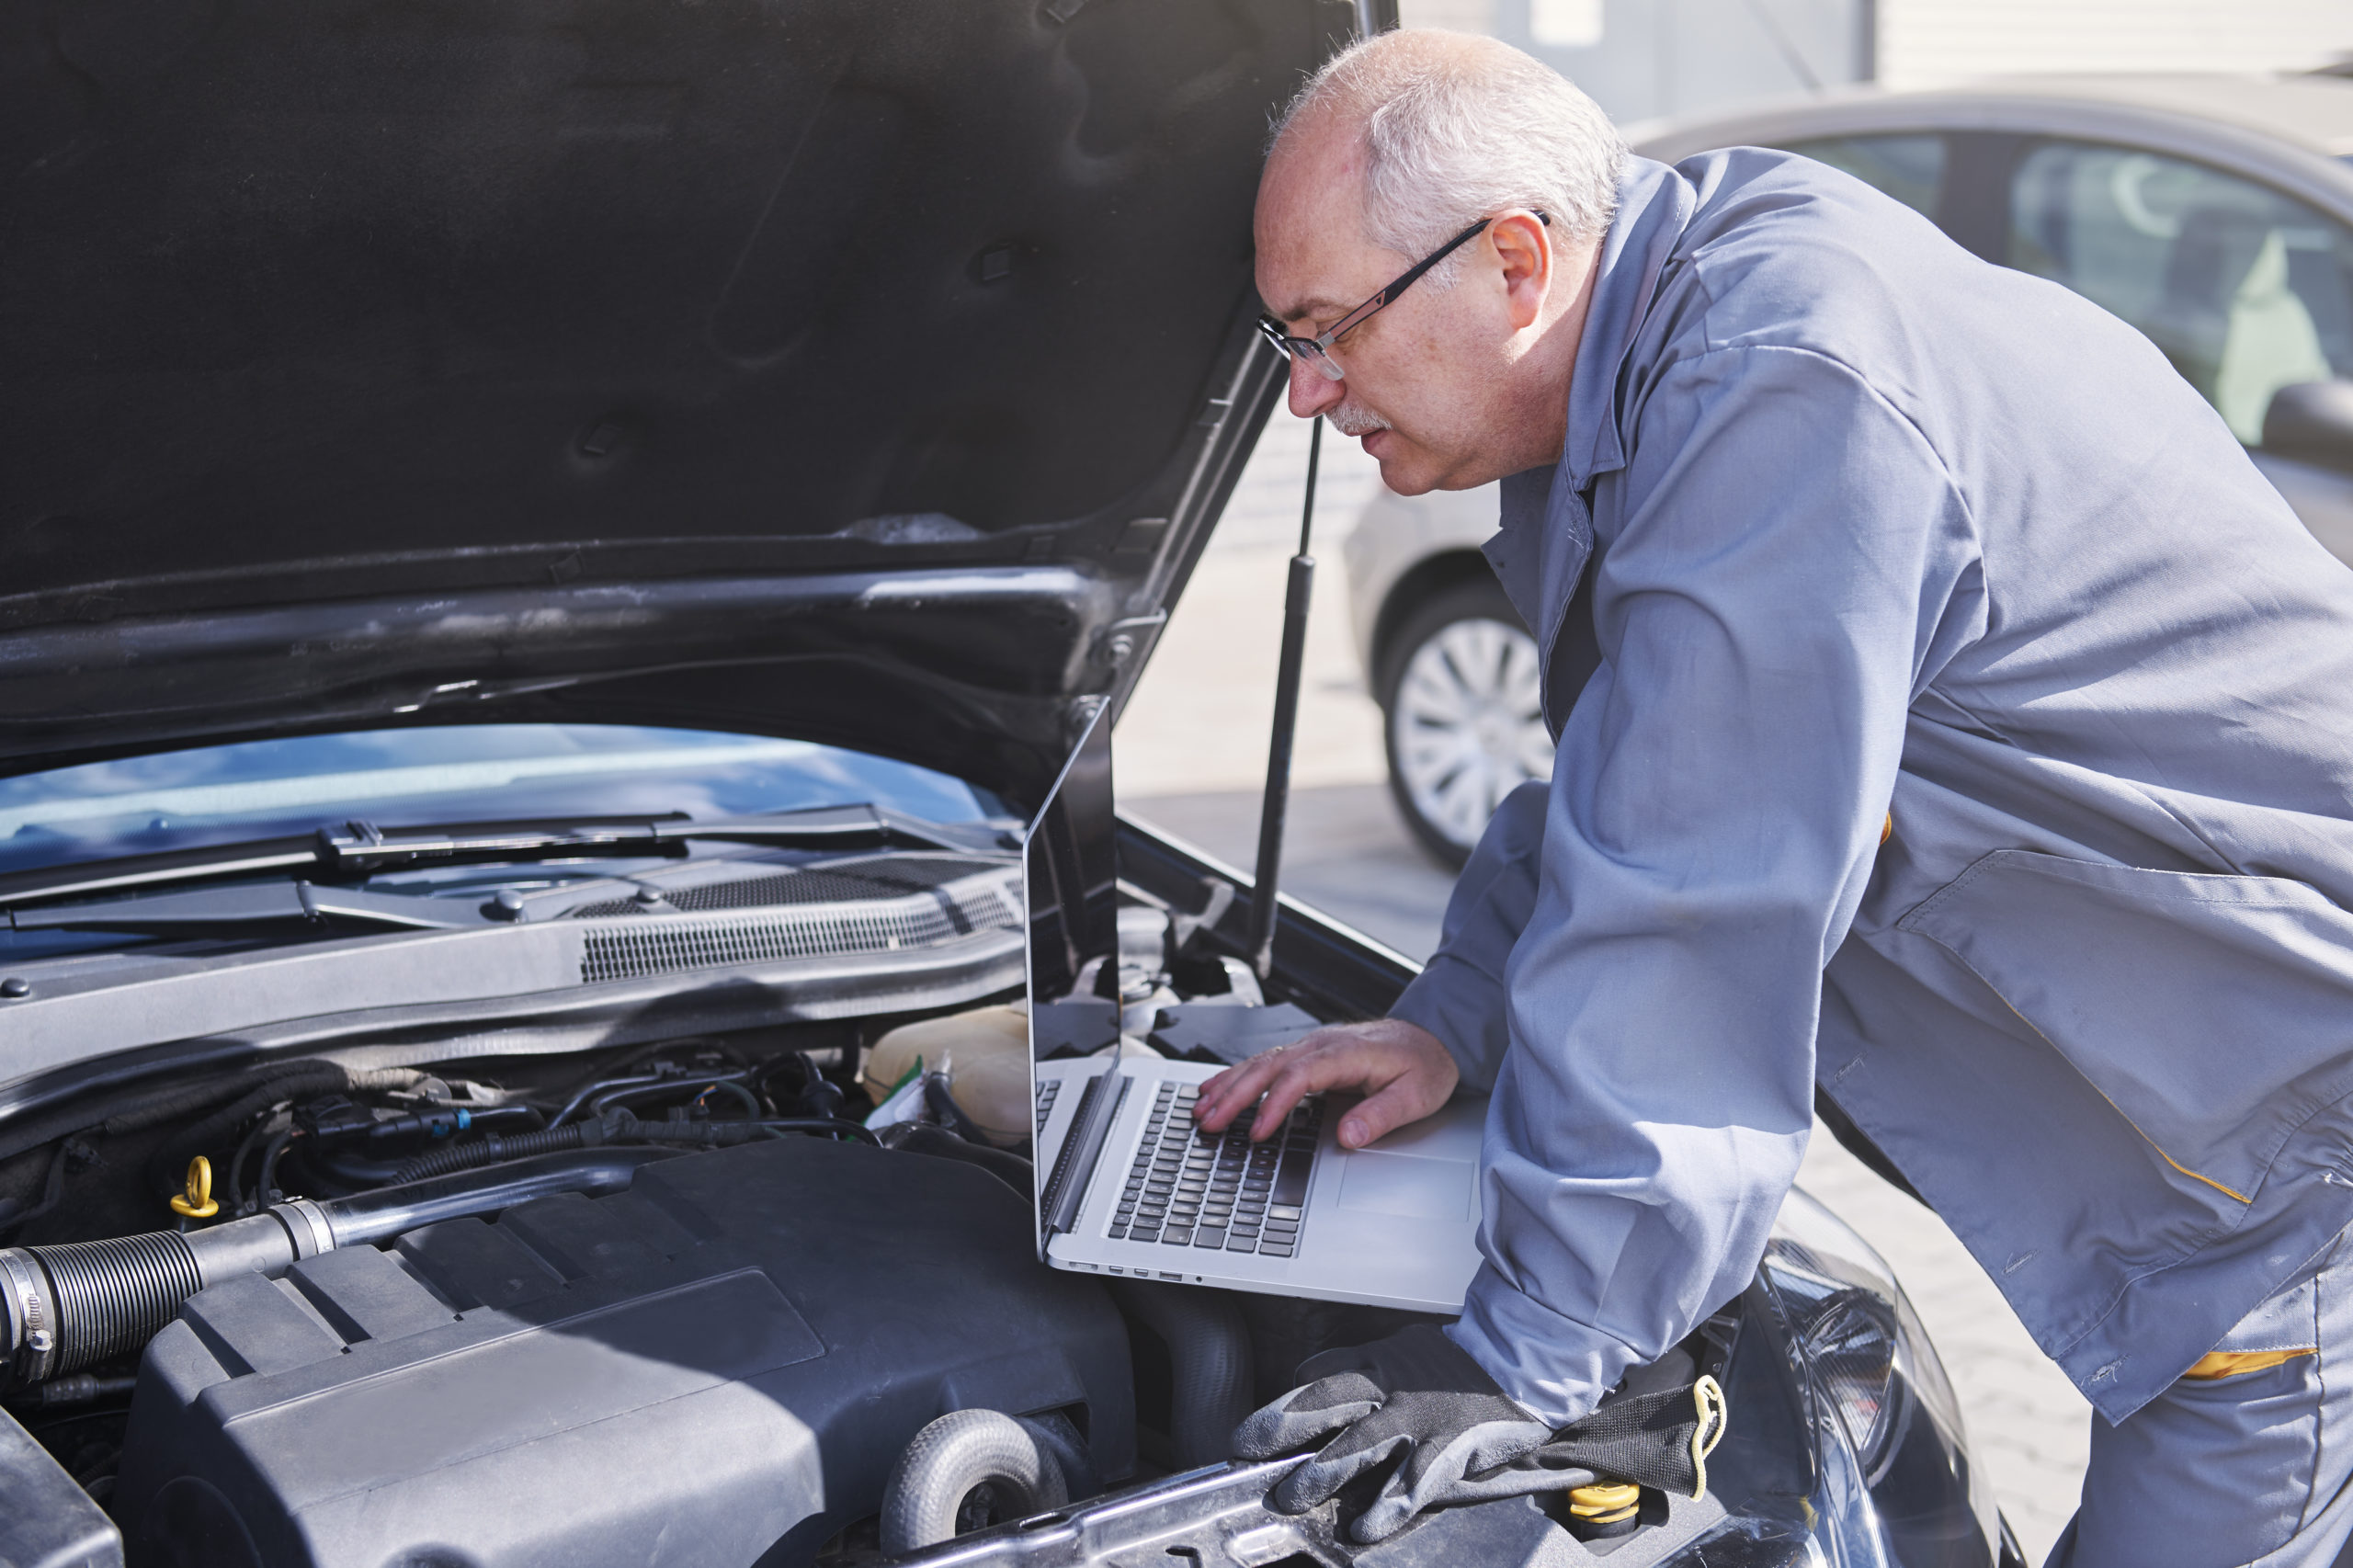 Save Up to 3 Work Weeks by Using Auto Repair Shop Software